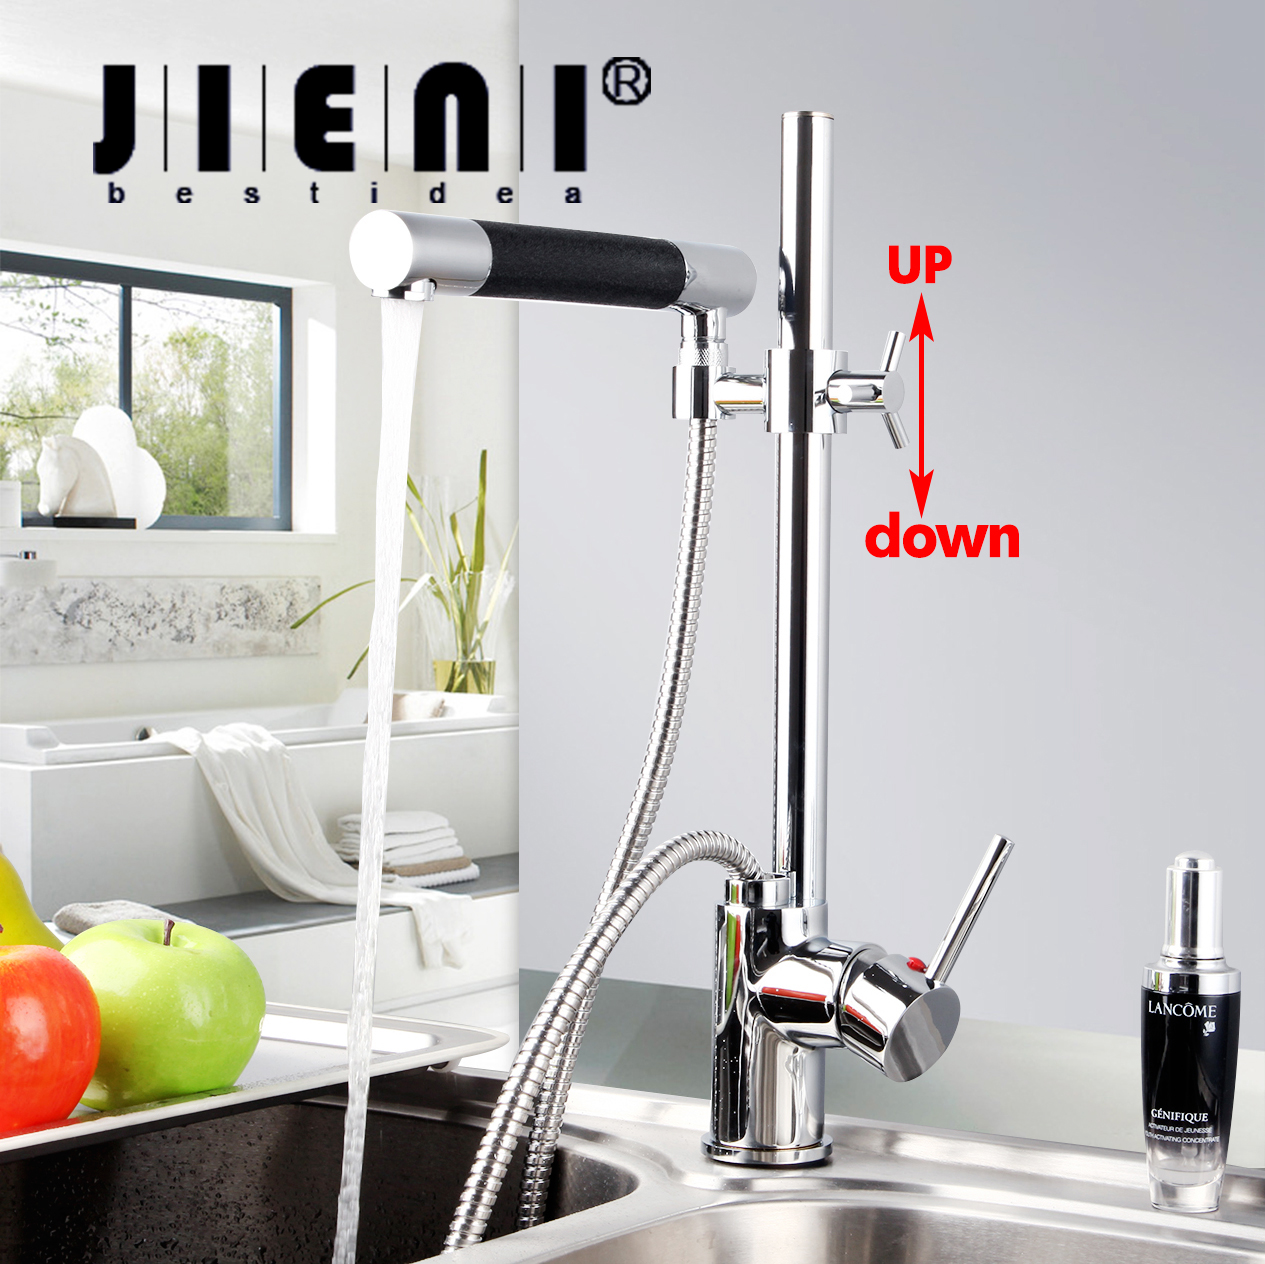 Pull Down Kitchen Faucet Tap Rotated Polished Chrome With Flexible Spary Handle Swivel Kitchen Basin Sink Mixer Taps newly arrived pull out kitchen faucet gold sink mixer tap 360 degree rotation torneira cozinha mixer taps kitchen tap